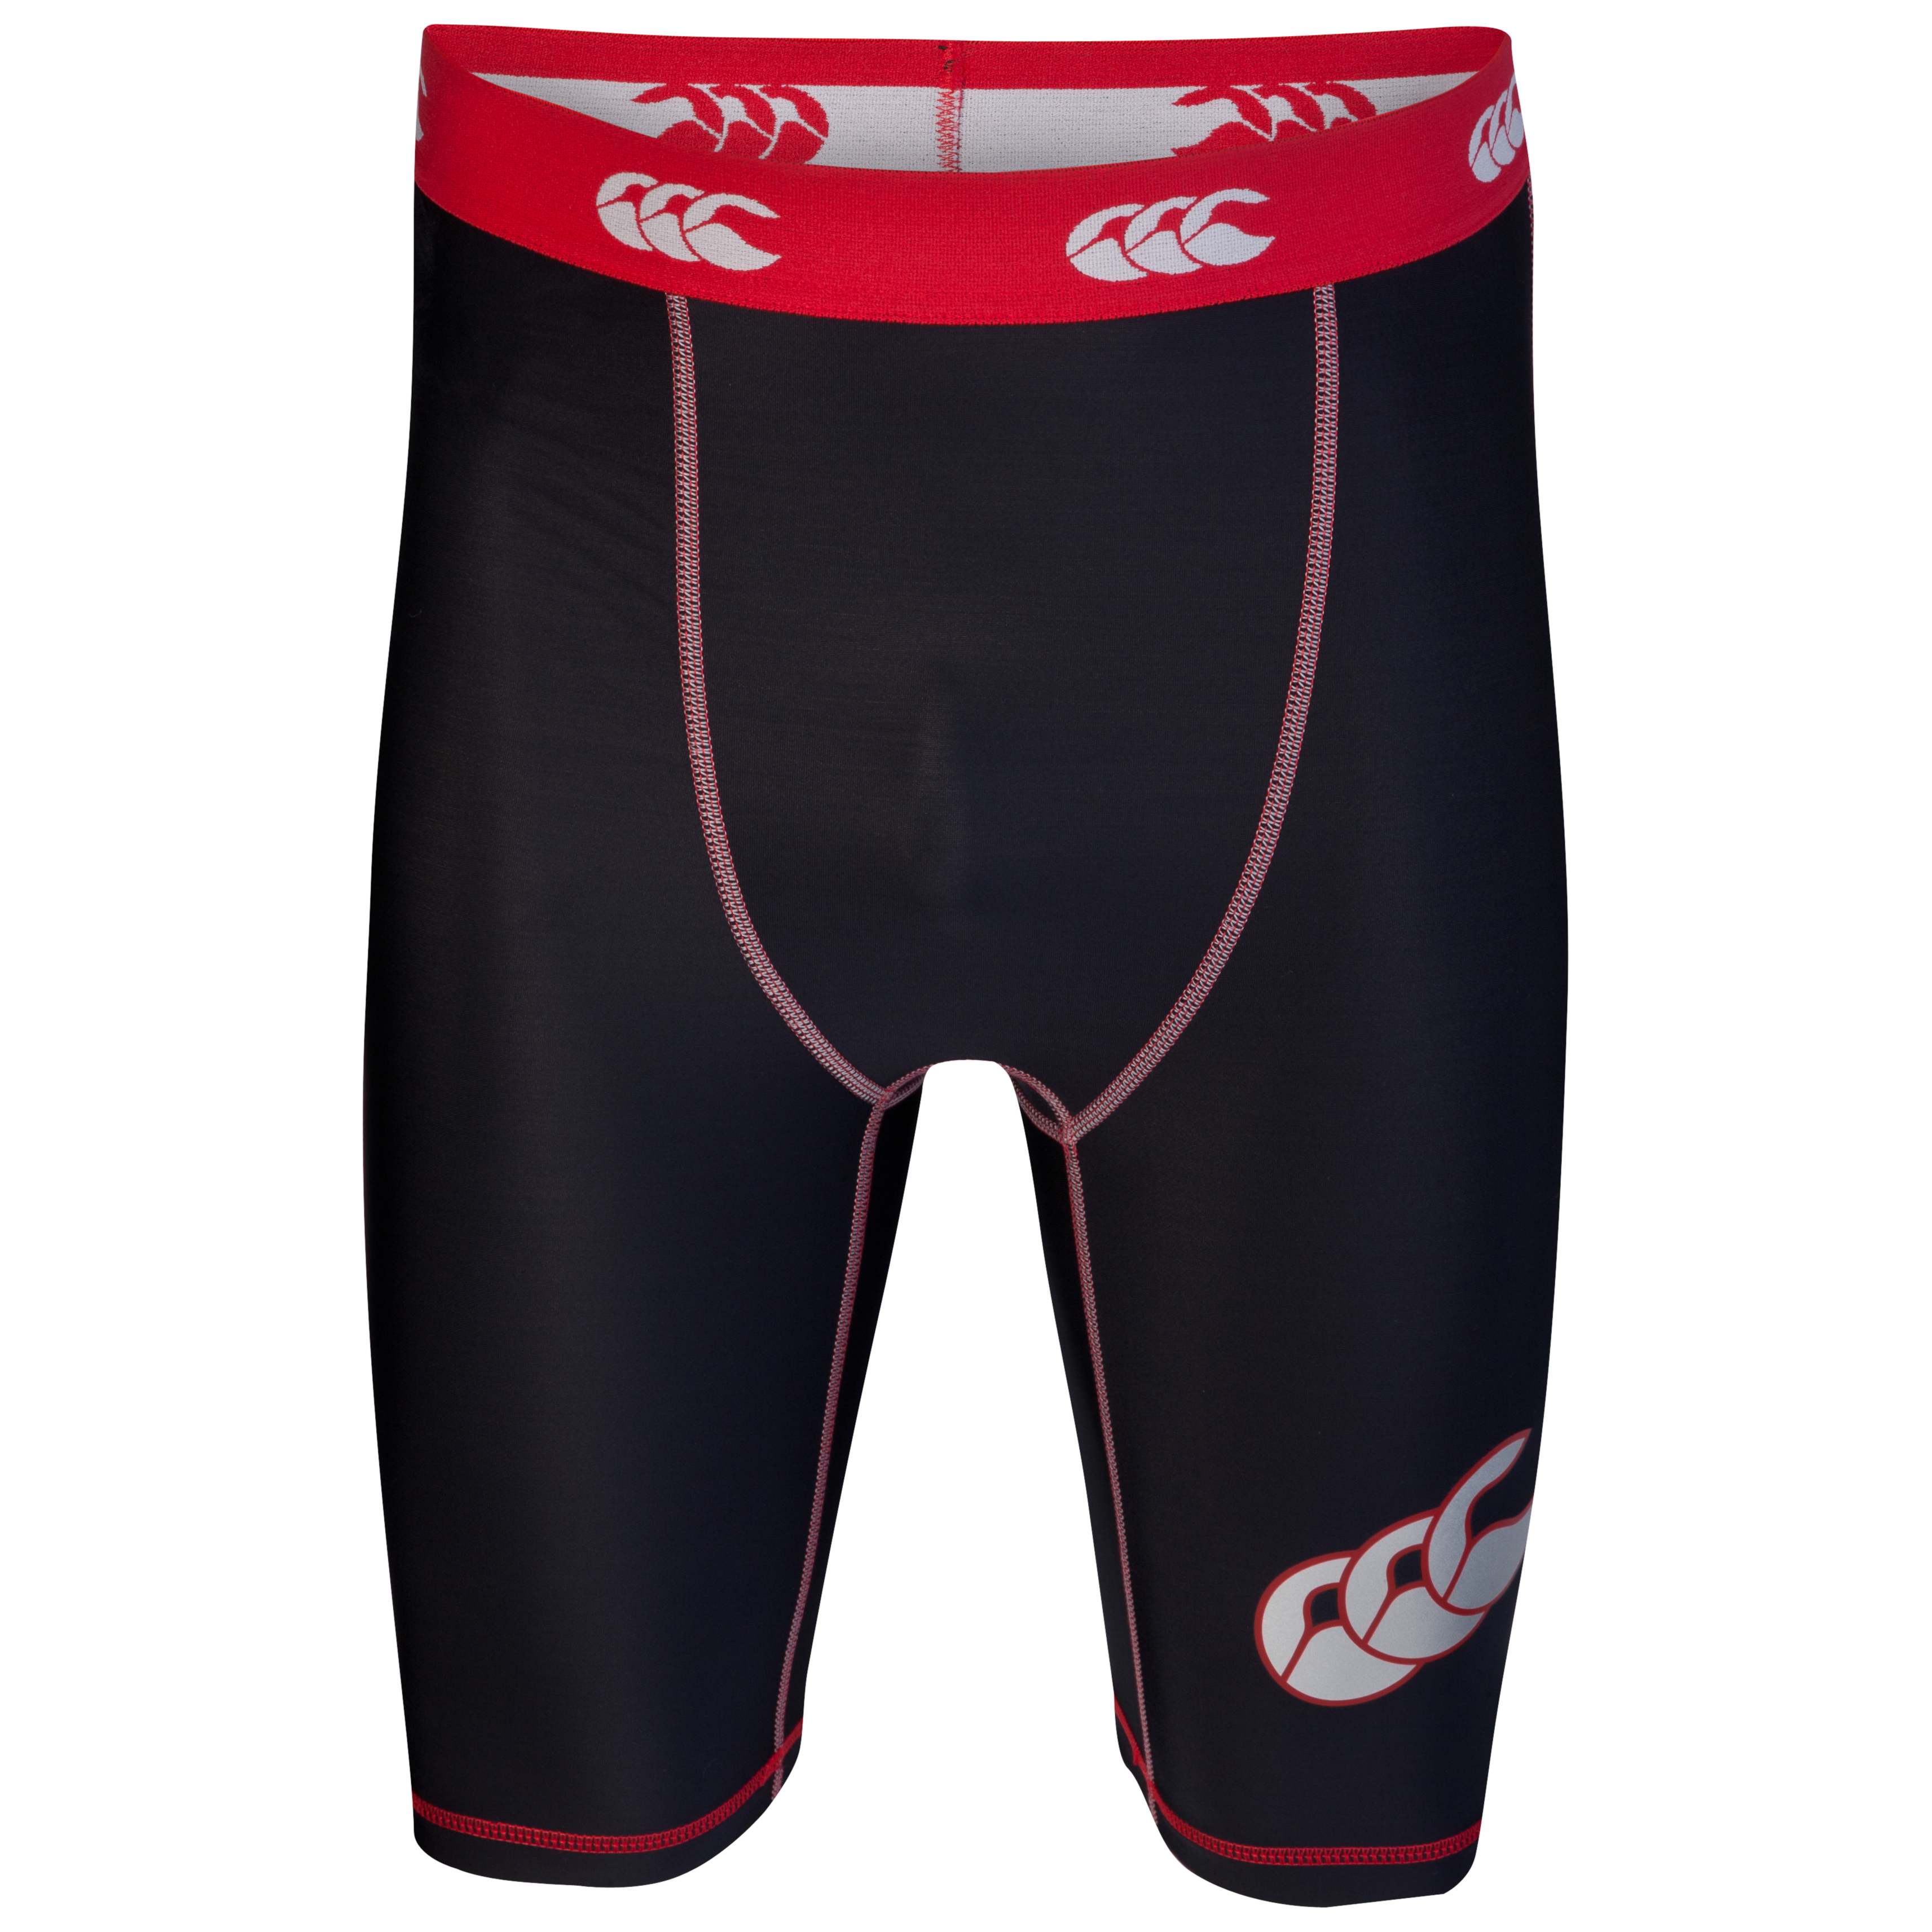 Canterbury Mercury Stability Compression Baselayer Short - Black